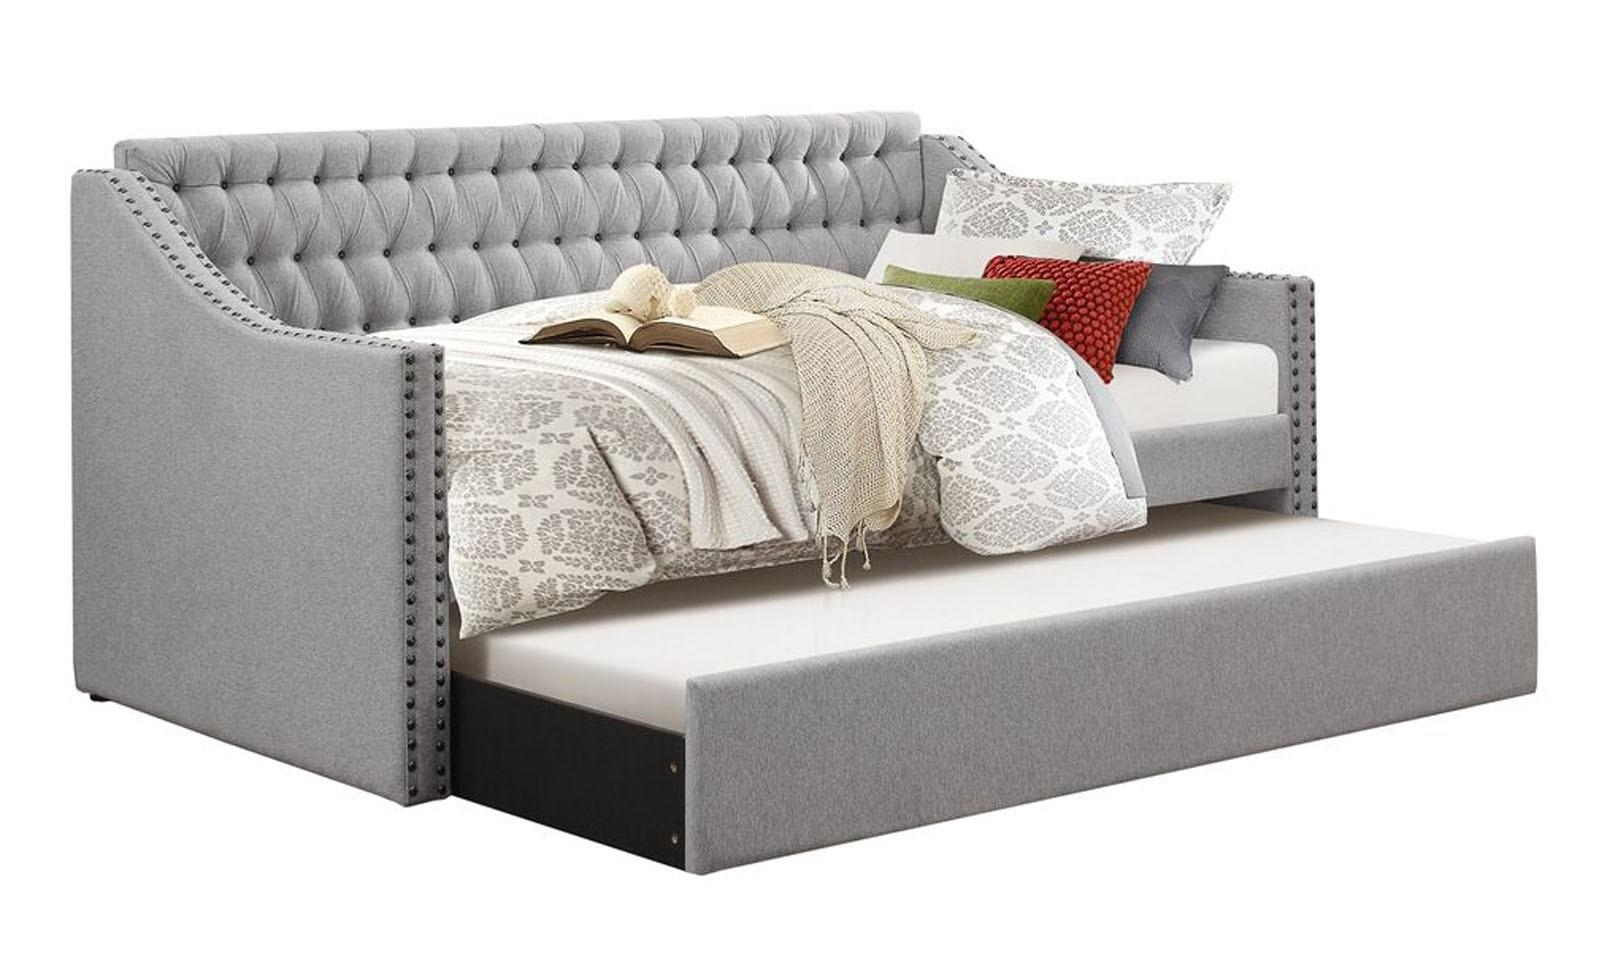 Trundle Beds Sacramento, Rancho Cordova, Roseville, California With Regard To Sofas With Trundle (Image 18 of 20)